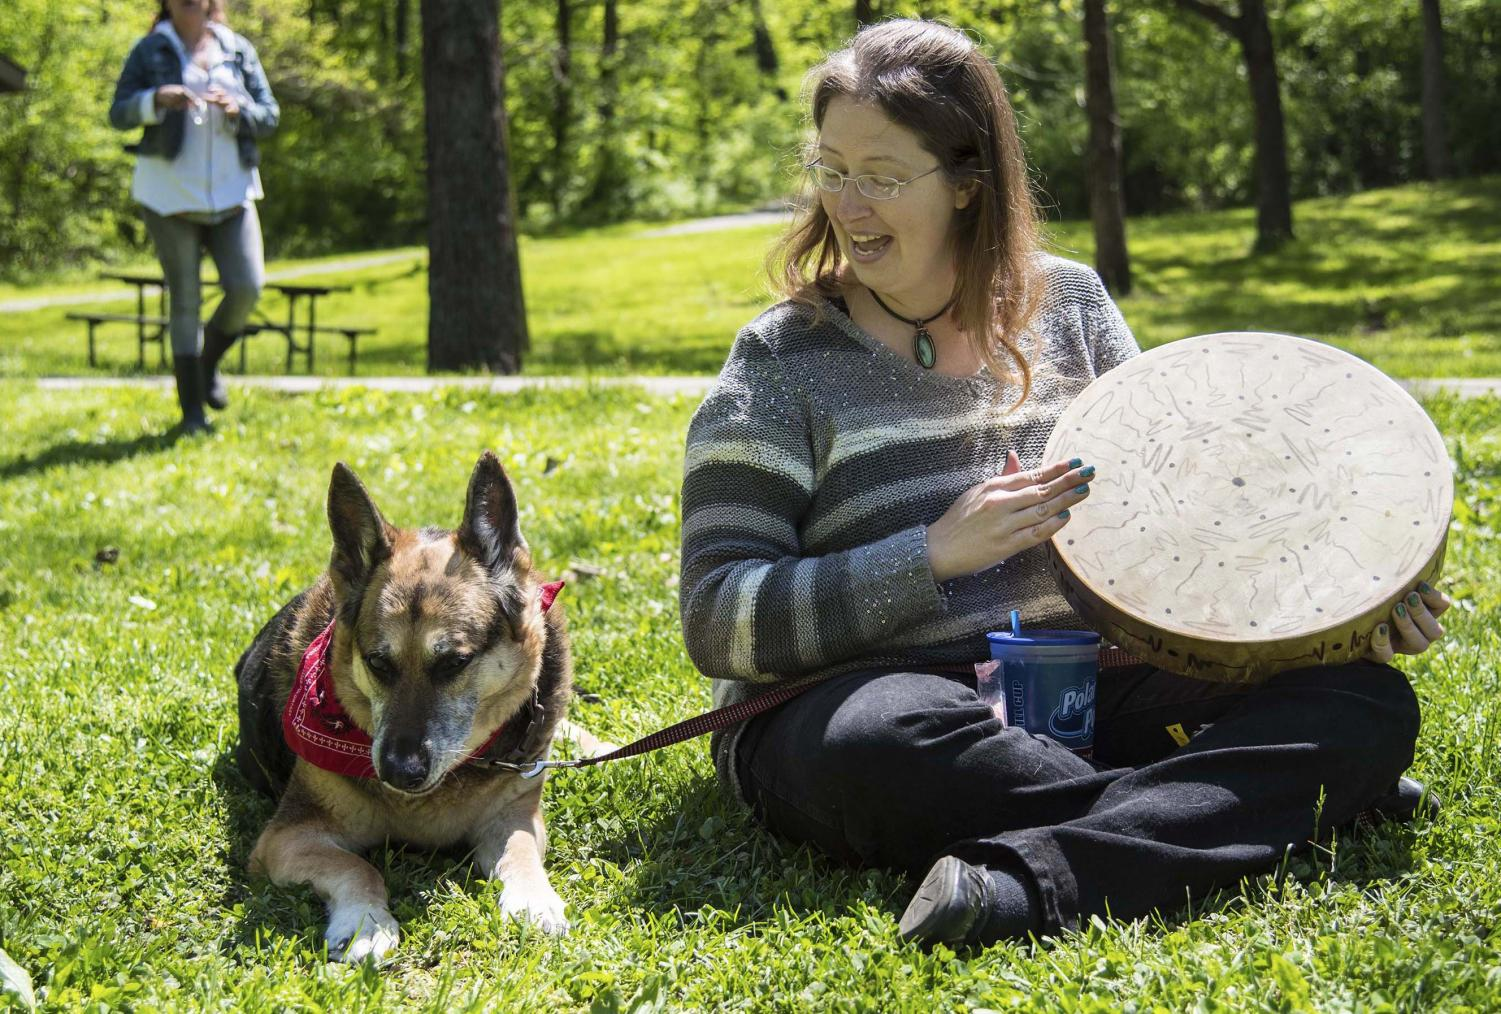 Kimberly+Castleberry+beats+on+her+drum+while+watching+the+annual+SIPA+Beltane+Ritual+at+Giant+City+State+Park+April+28%2C+2019.+